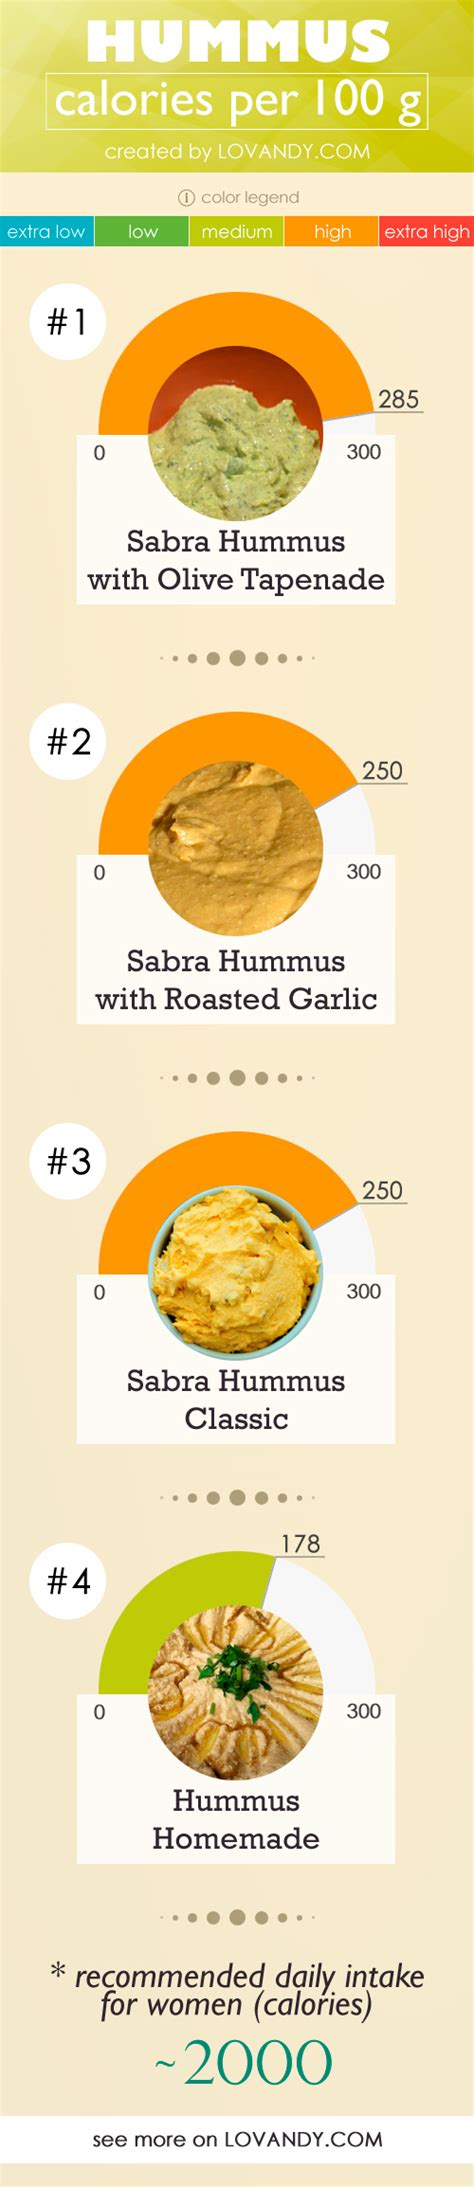 how many calories are there in hummus 250 cal